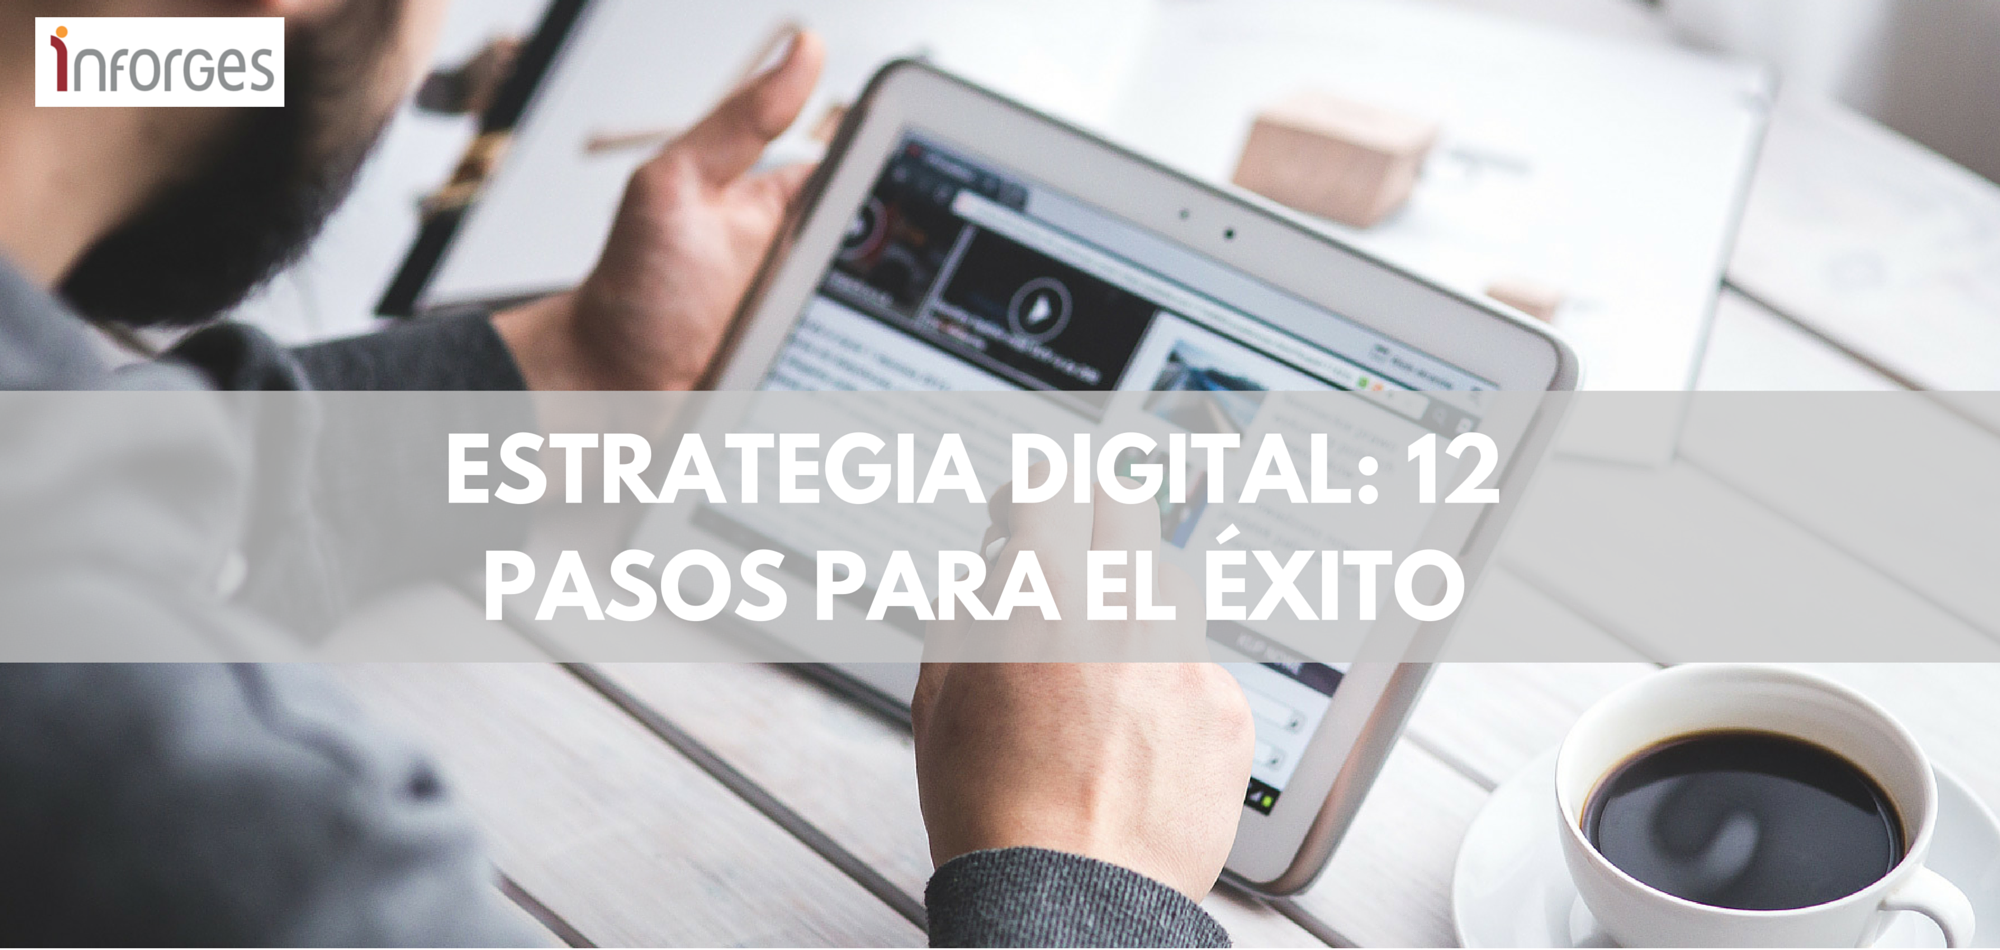 ESTRATEGIA_DIGITAL_MARKETING_WEB_PASOS_EXITO